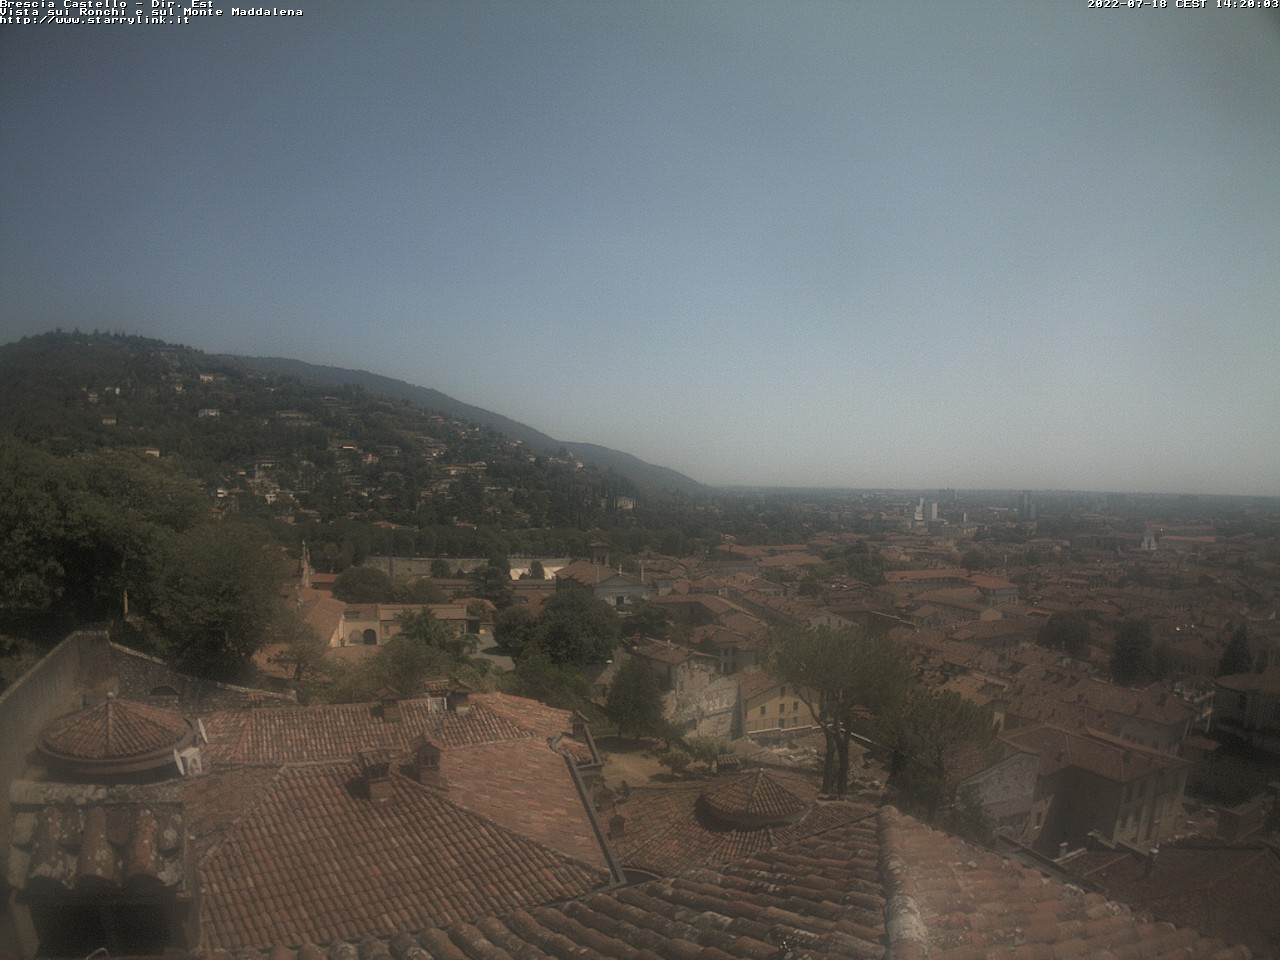 http://www.starrylink.it/webcam/castelloest/castelloEstMEGA.jpg